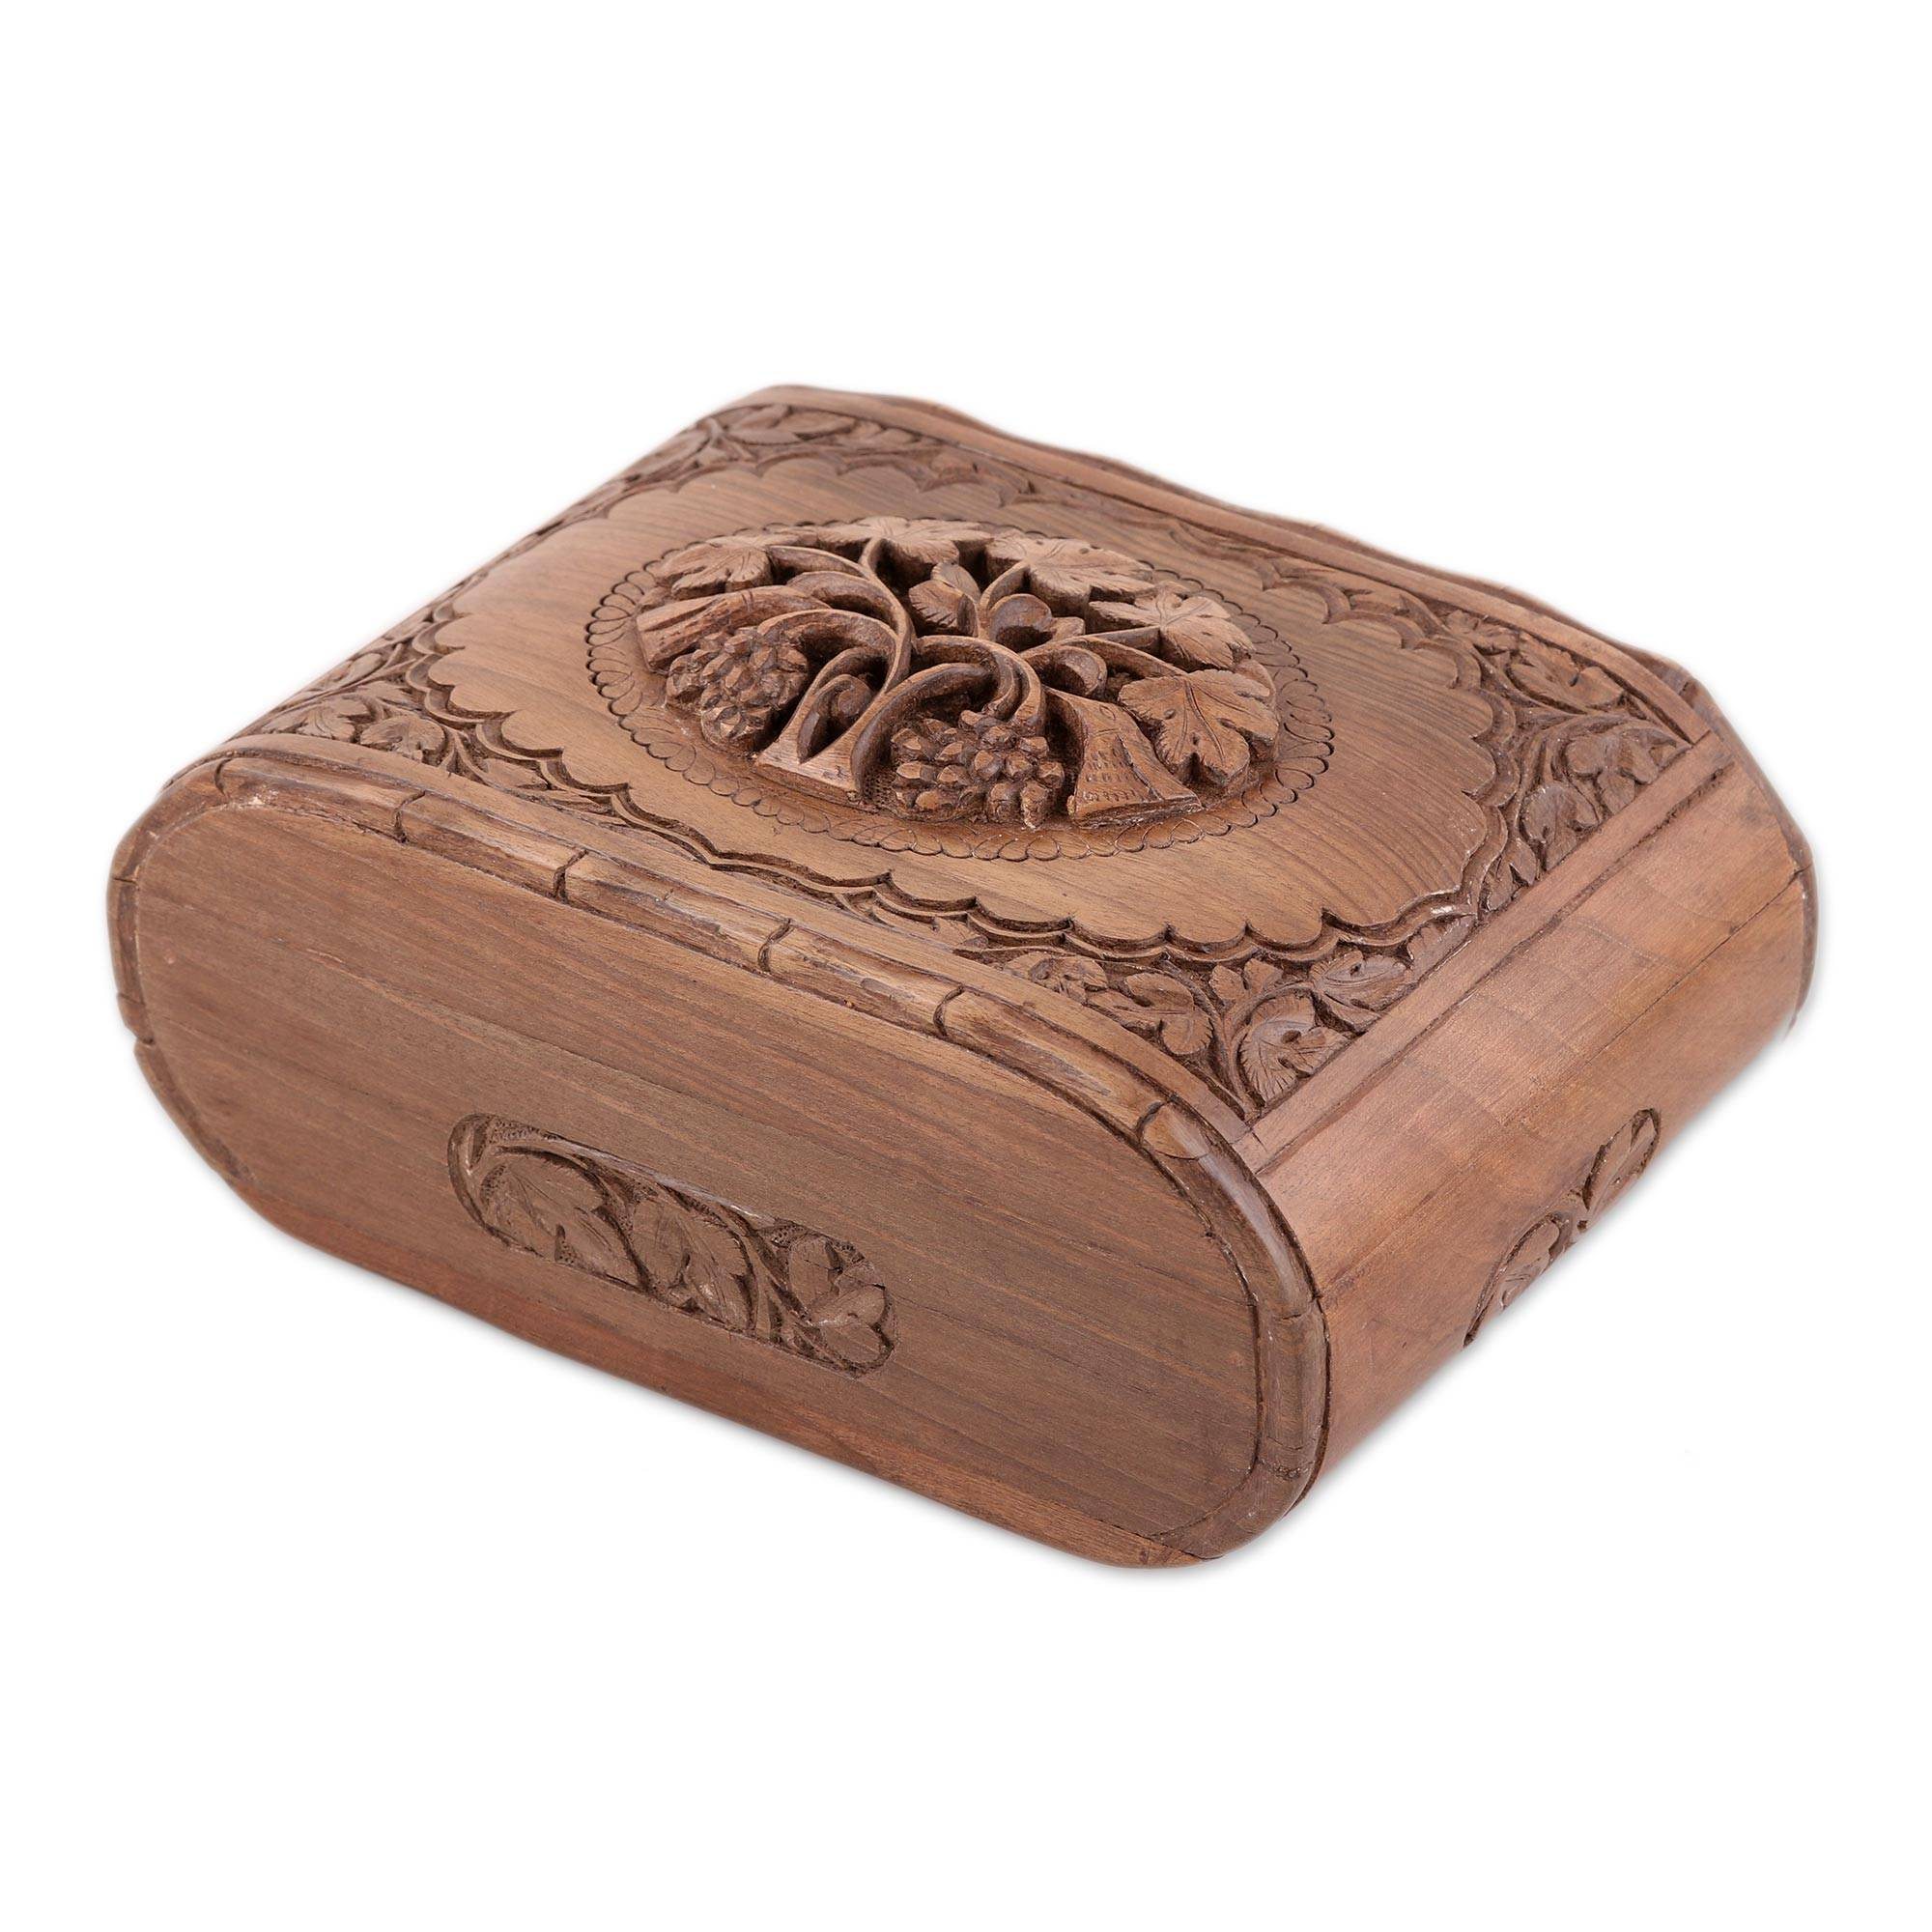 Unicef Market Floral Carved Wood Jewelry Box Kashmiri Delight